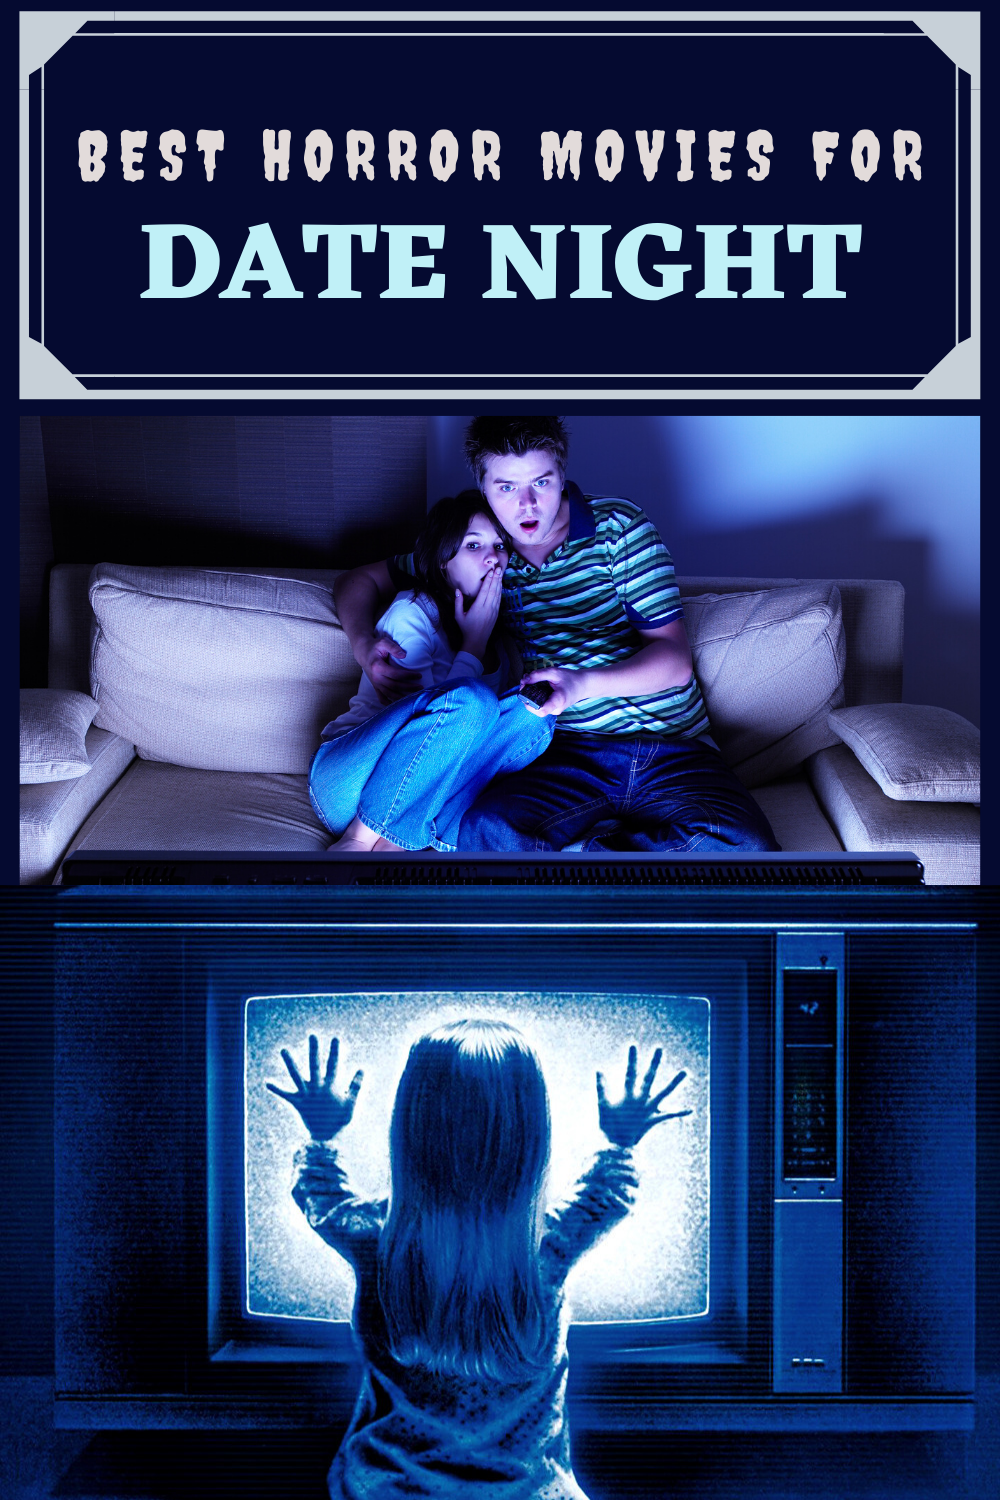 The Best Horror Movies for Date Night in 2020 (With images